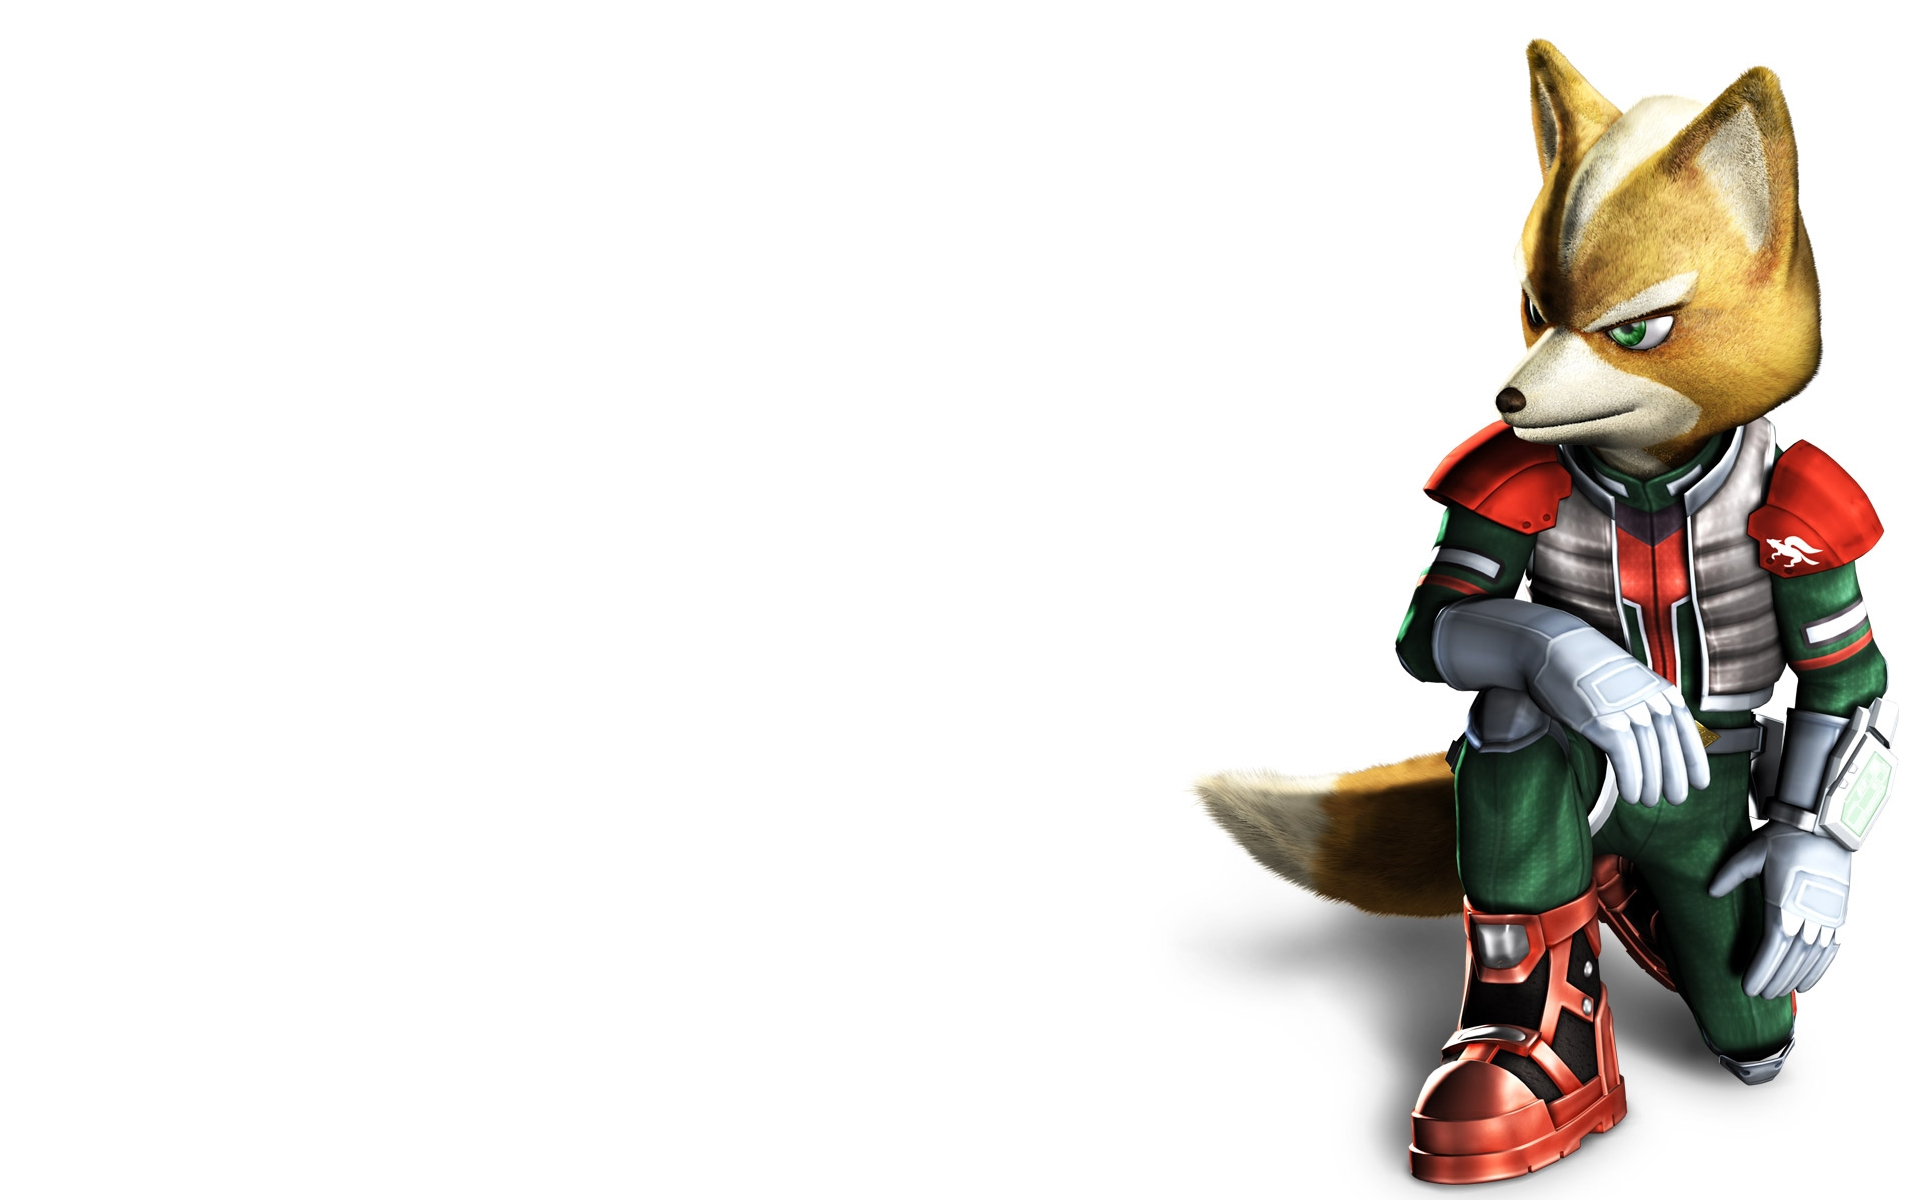 fox mccloud iphone wallpaper collections